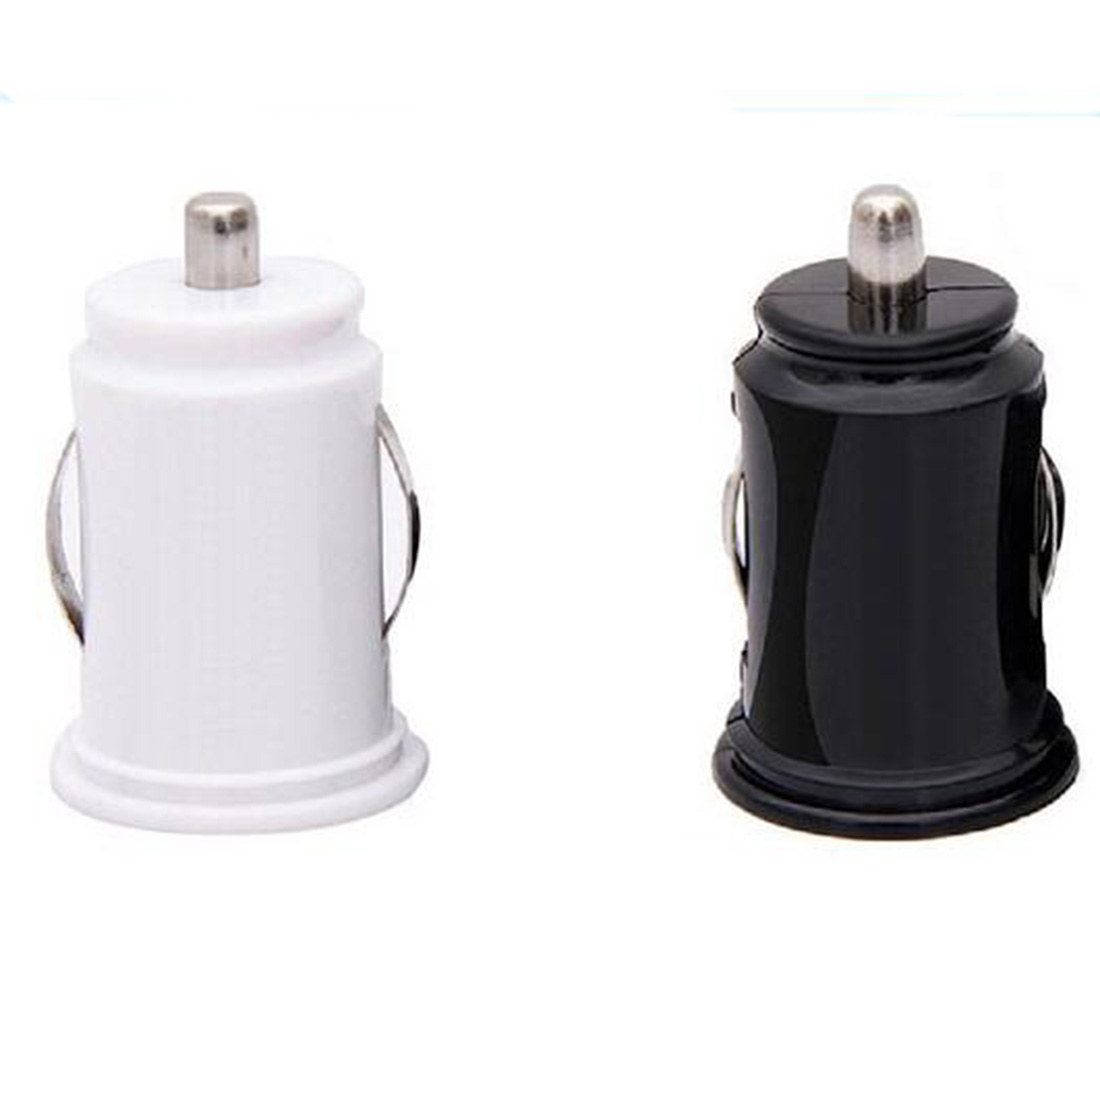 Universal 2.1A 5V Dual USB car charger 2 port Cigarette Lighter Adapter Charger USB Power Adapter For all smart phones dual usb car cigarette lighter charger for ipad mini ipad 4 3 2 white